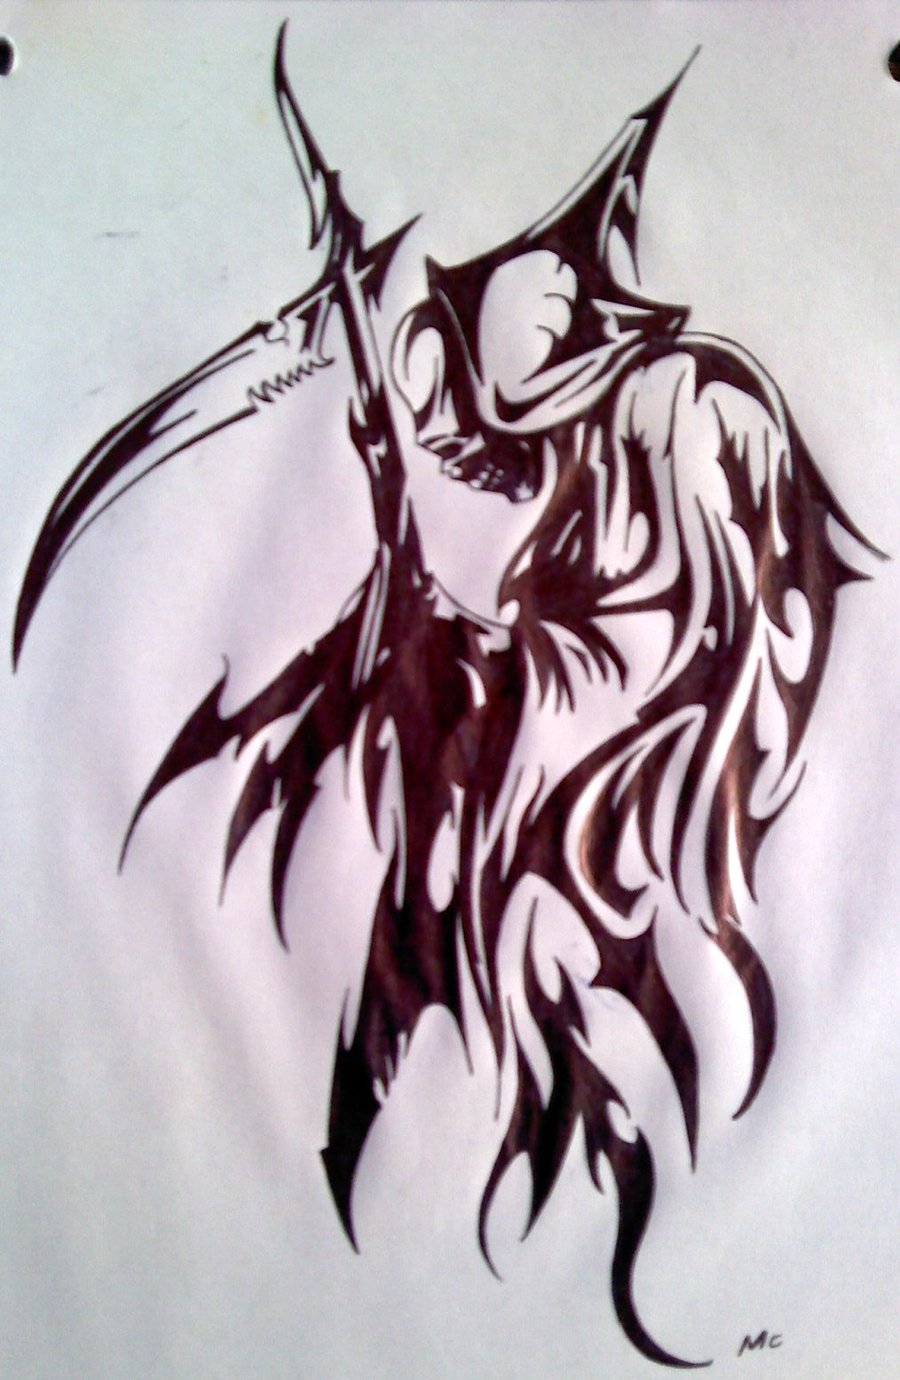 Drawn grim reaper tribal DeviantArt by Reaper Grim Tribal